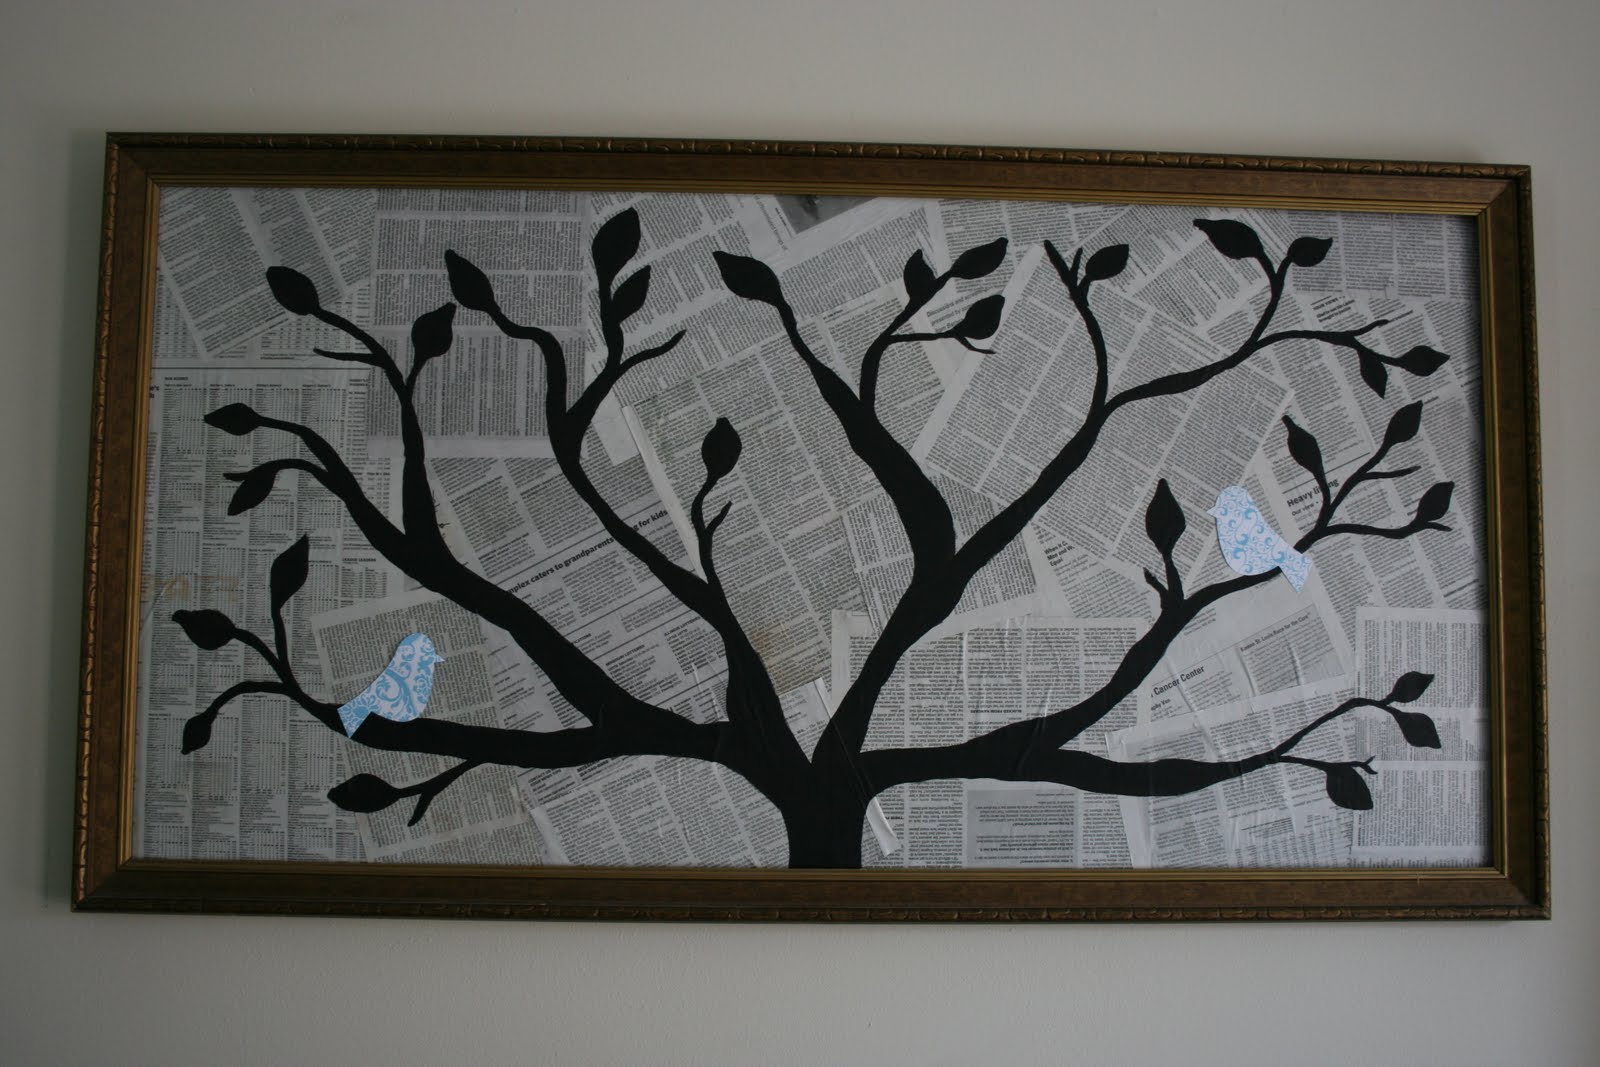 Aimee bee diy tree silhouette painting What do we call a picture painted on a wall